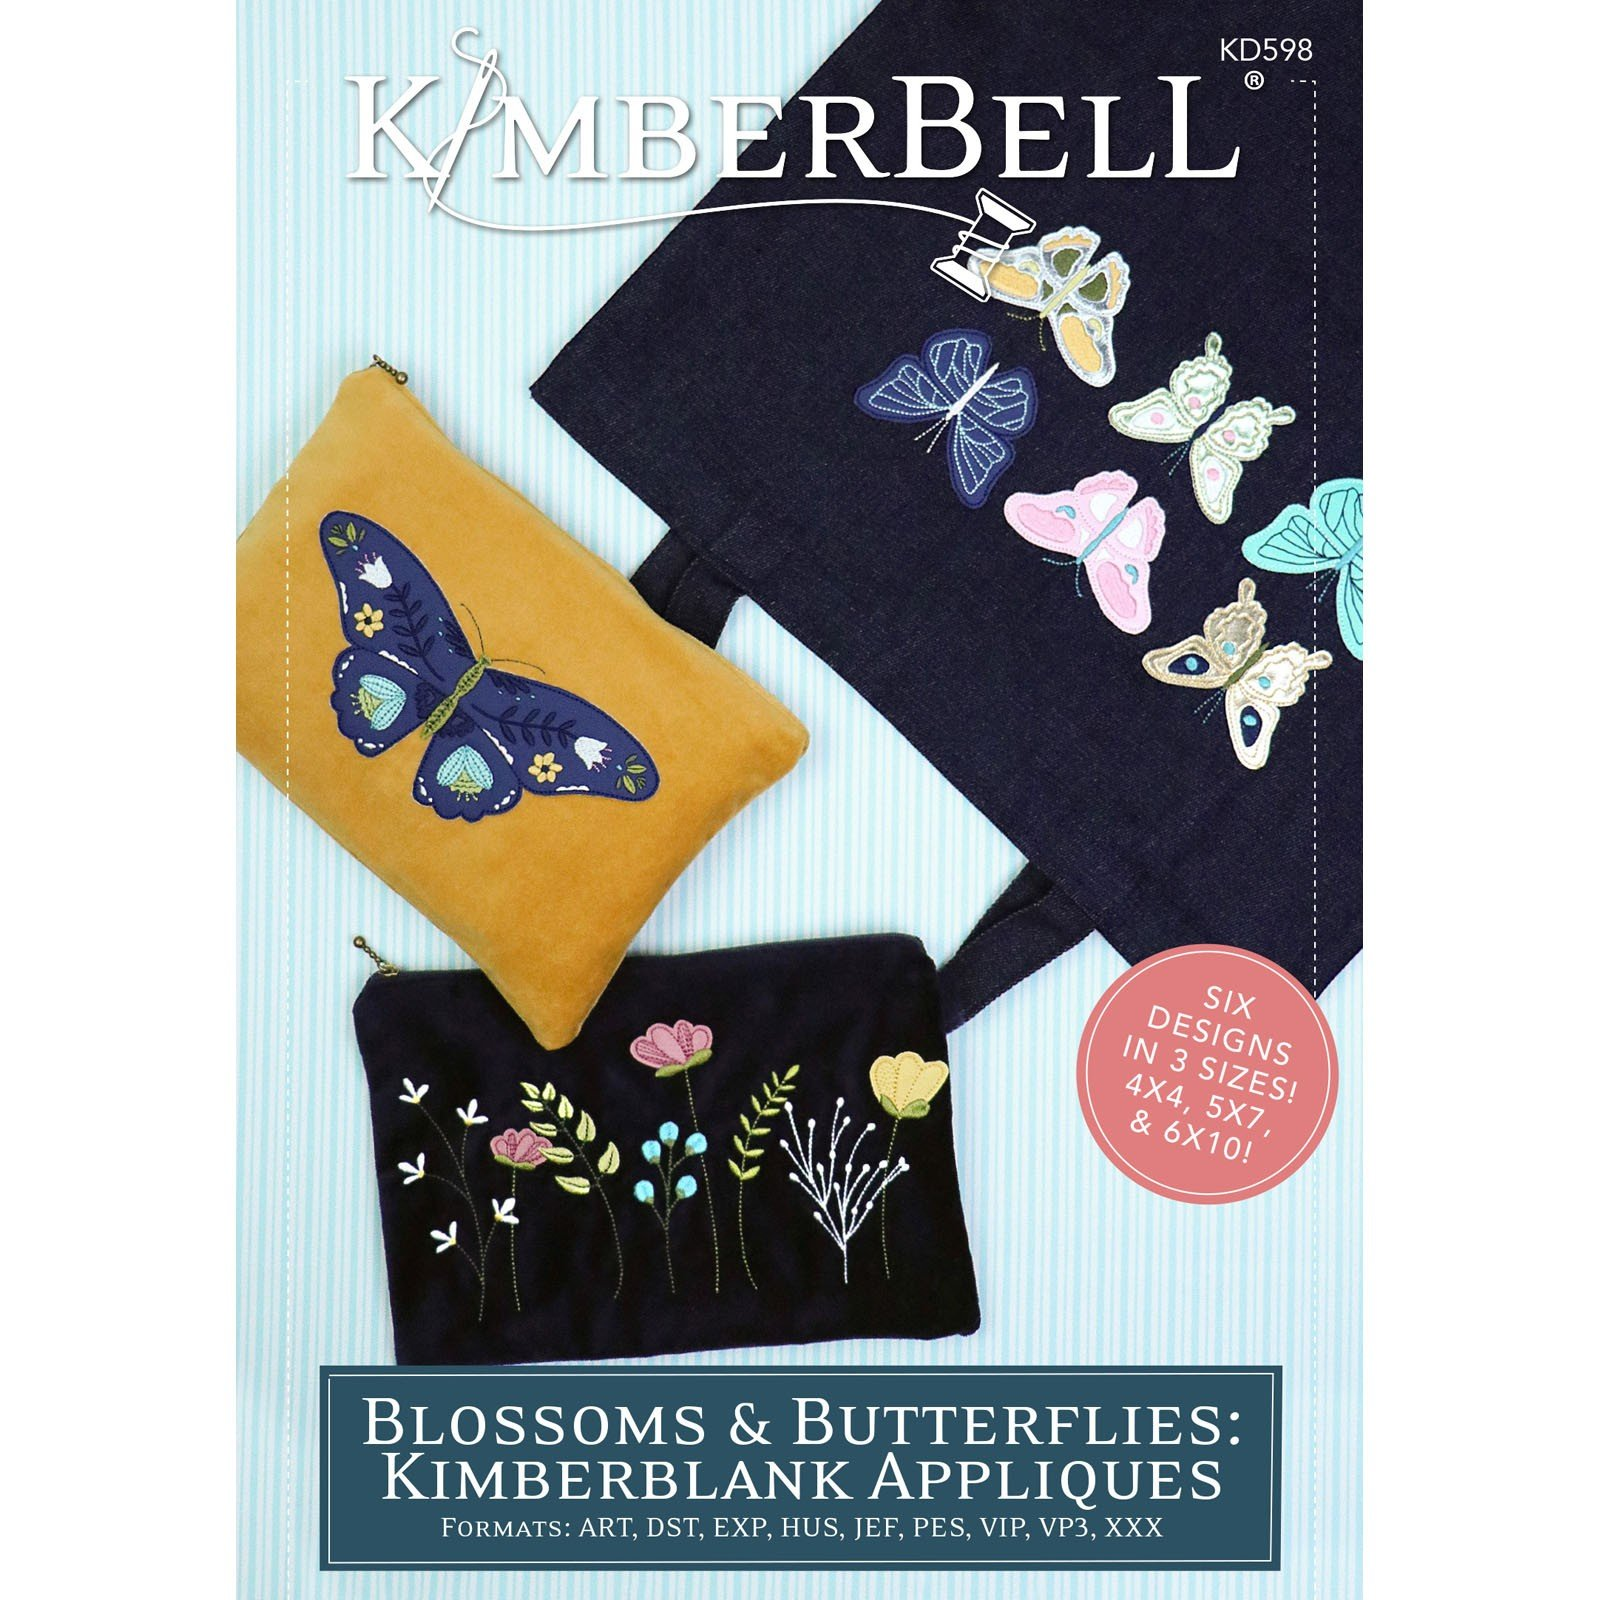 Blossoms & Butterflies: Kimberblank Appliques (Embroidery CD) by Kimberbell